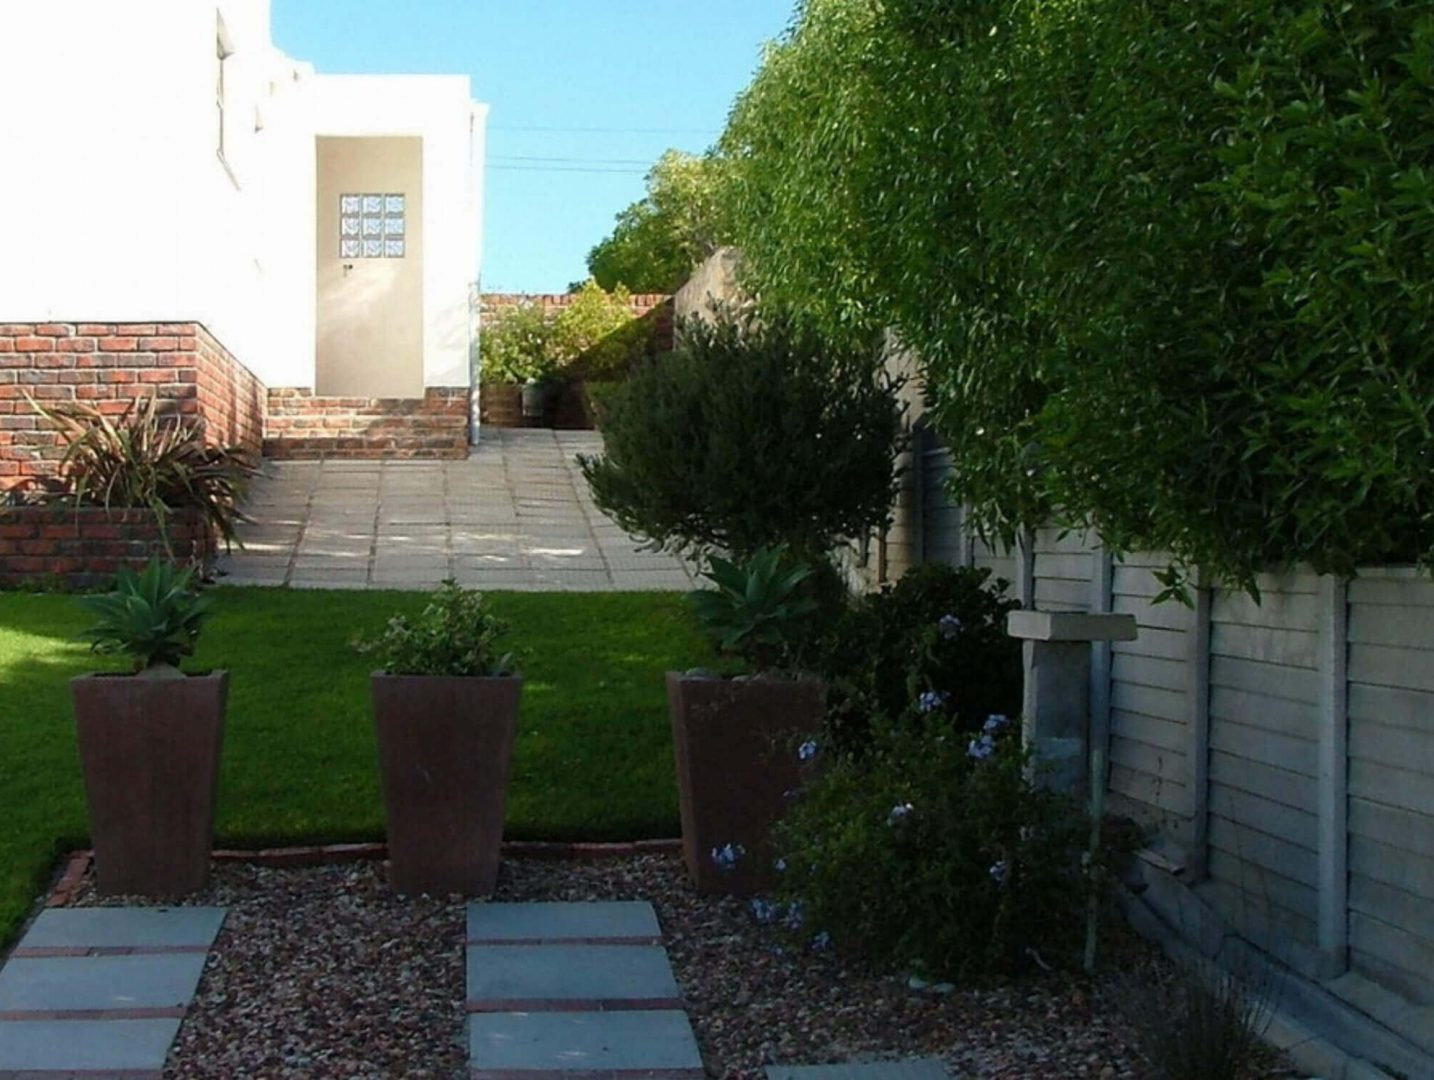 Arniston Holiday Accommodation Self-catering holiday homes - Arniston Letting Oom Hennie